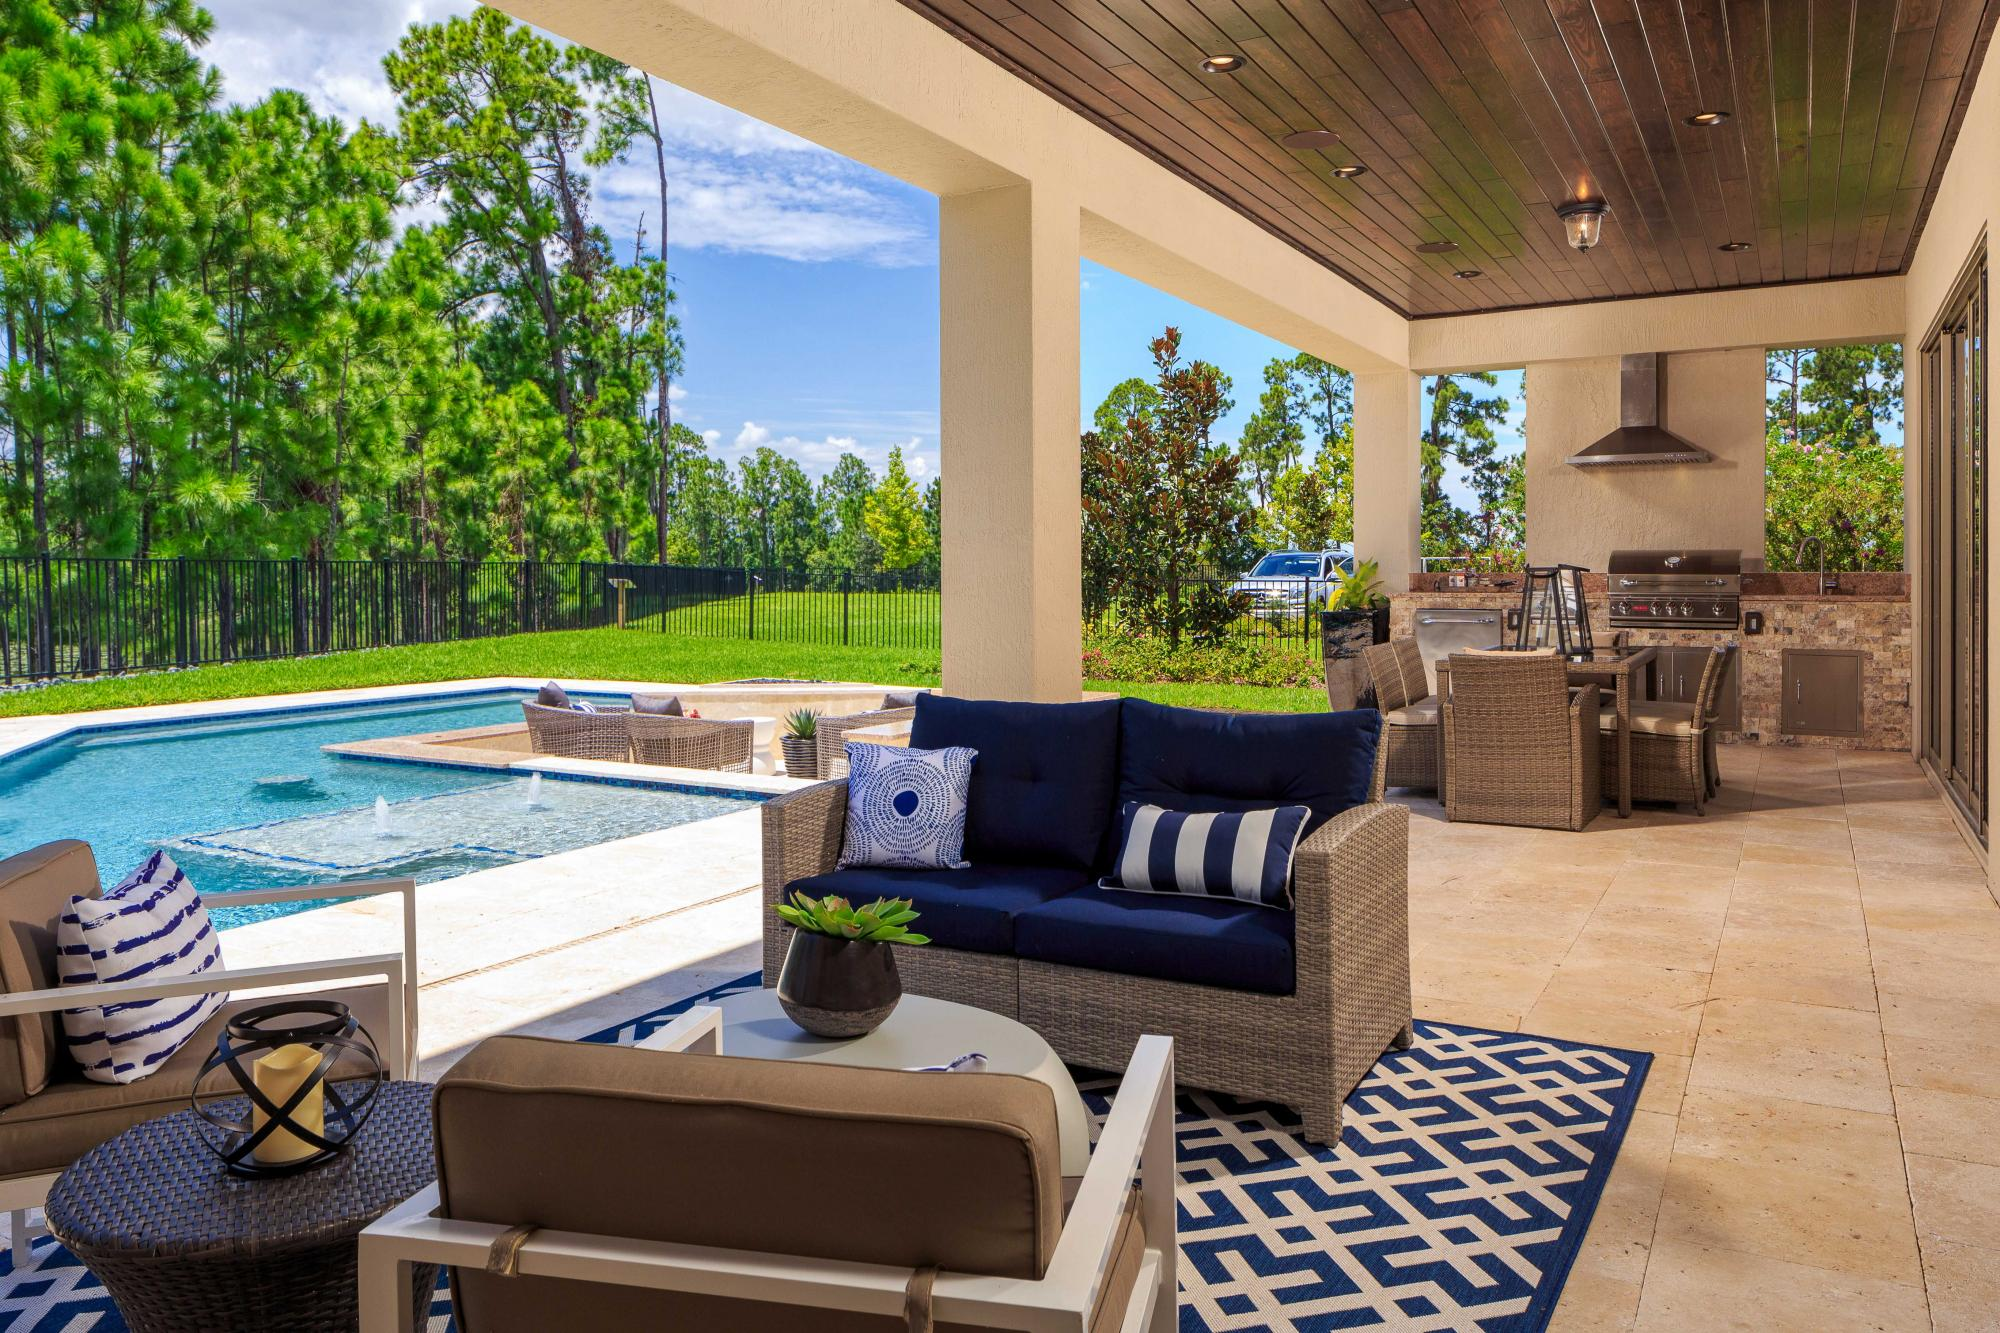 443385387770831_avalon_cove_patio